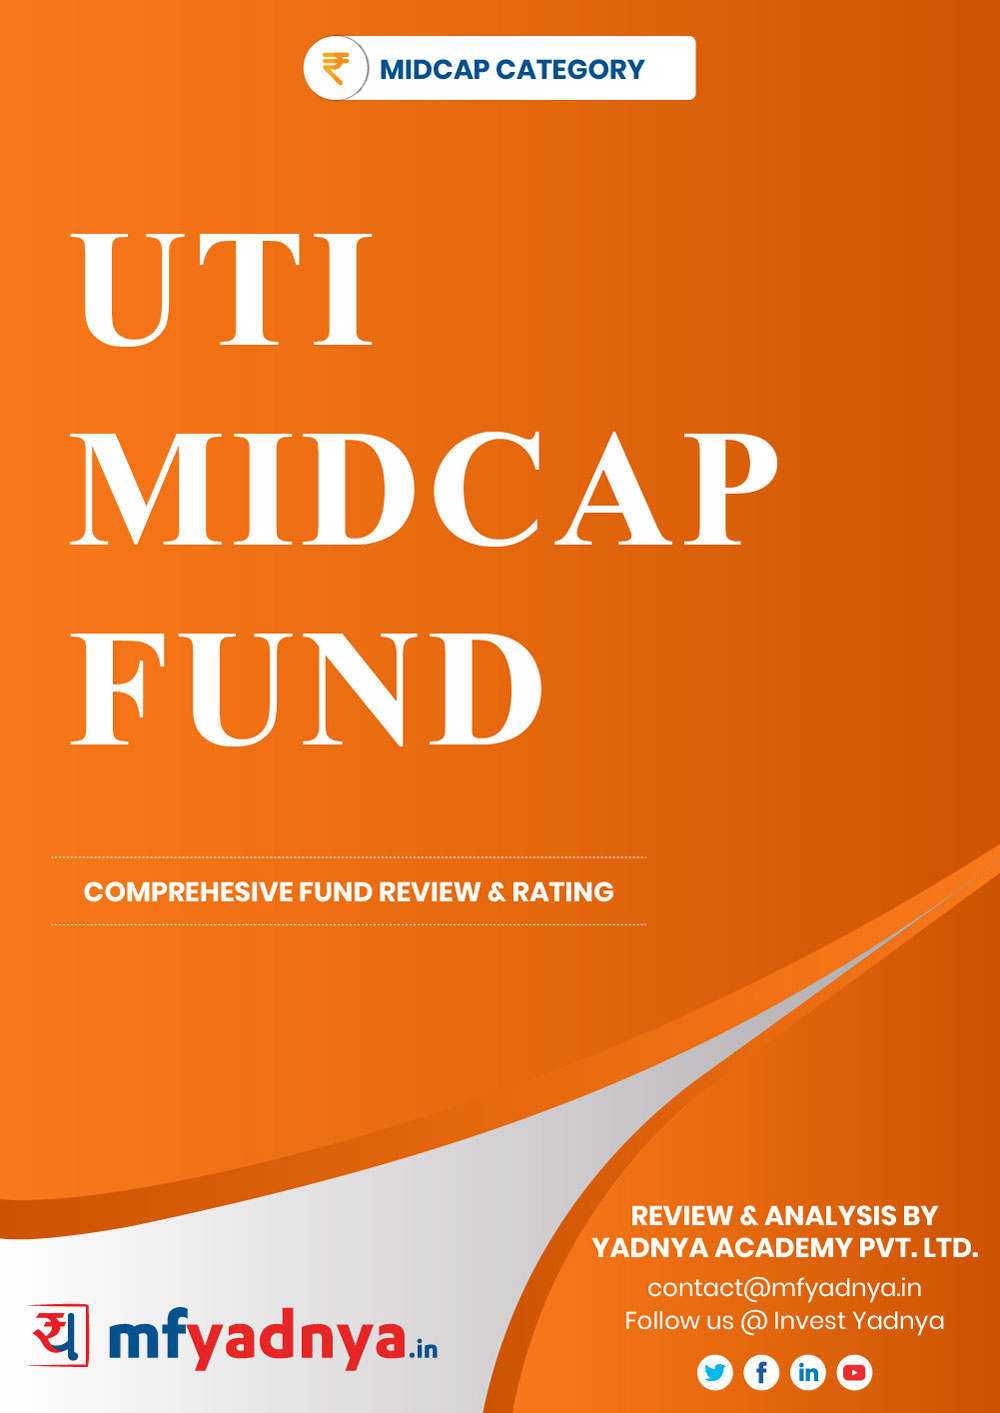 This e-book offers a comprehensive mutual fund review of UTI Mid Cap Fund. It reviews the fund's return, ratio, allocation etc. ✔ Detailed Mutual Fund Analysis ✔ Latest Research Reports